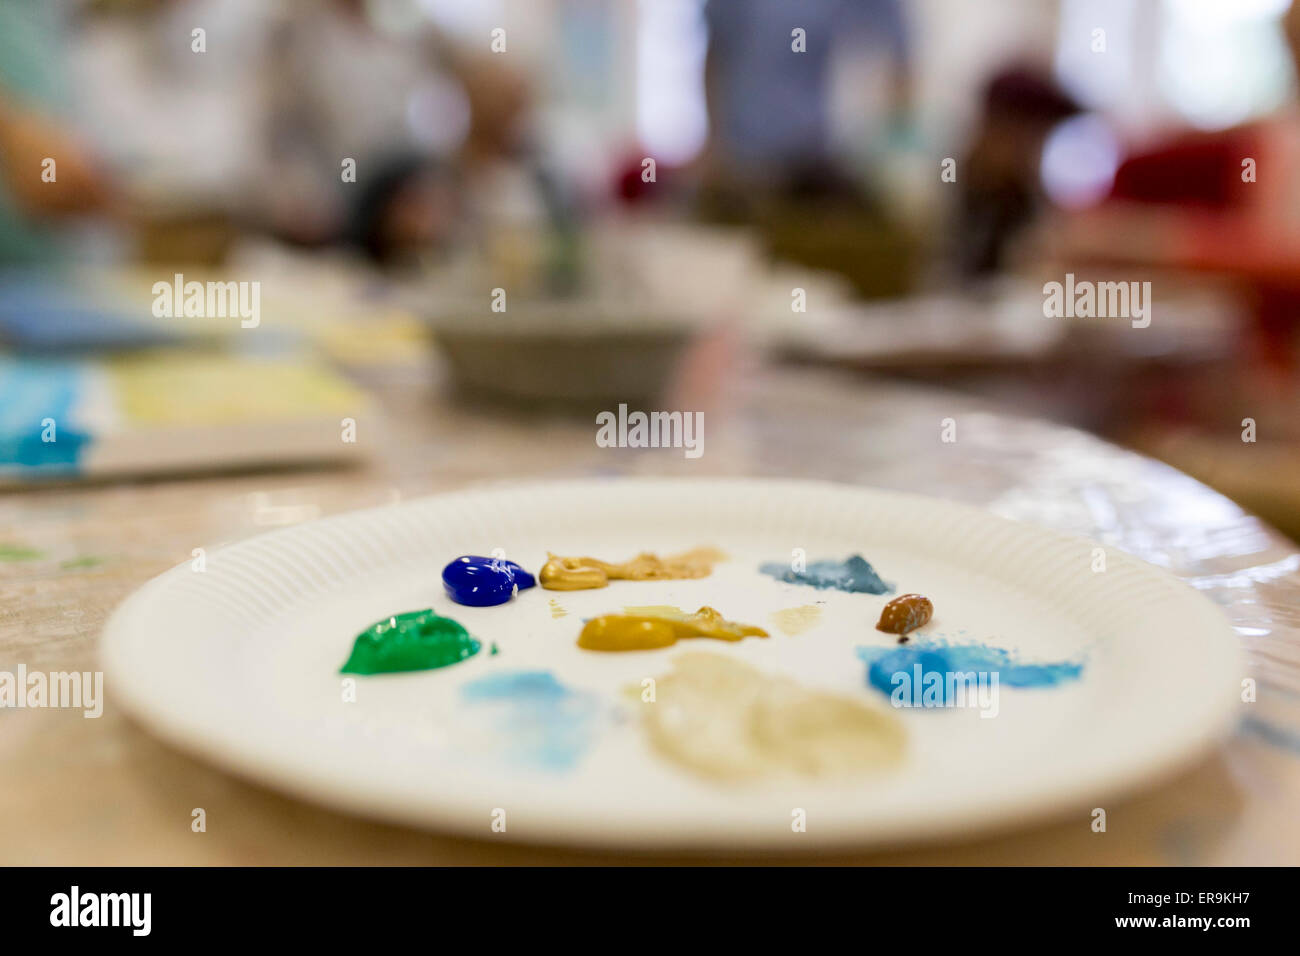 a paper plate being used as a paint palette - Stock Image